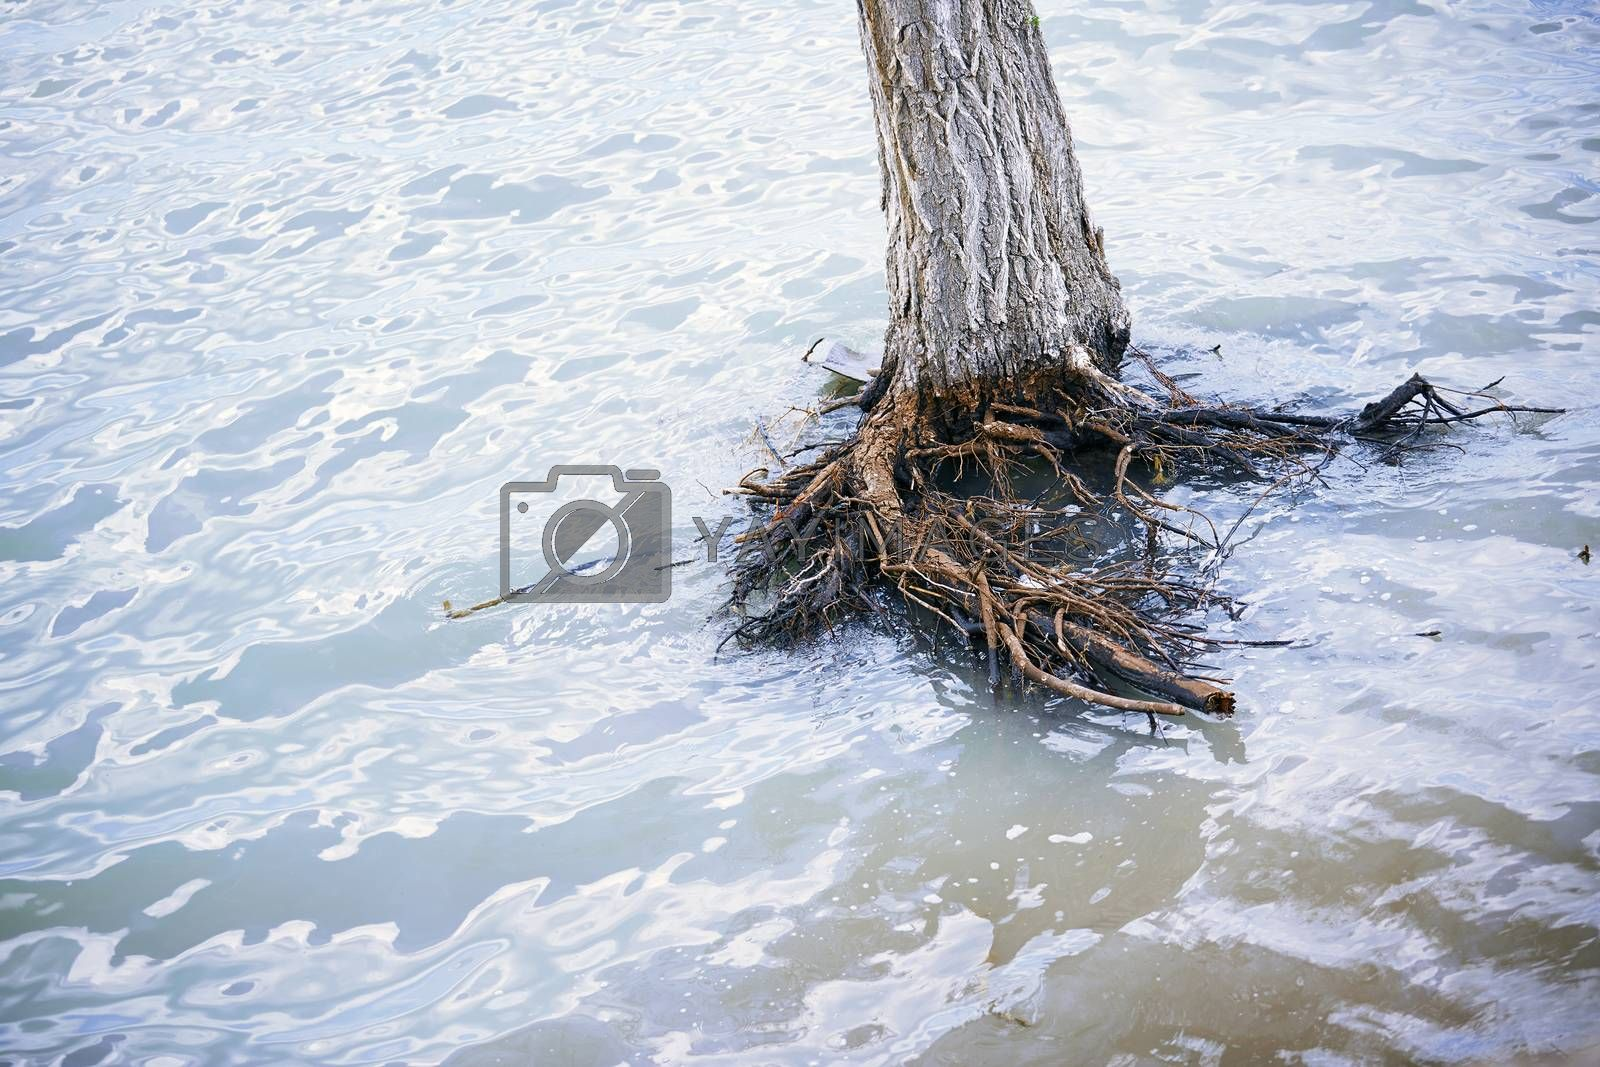 Dead tree in water during flood. Horizontal photo